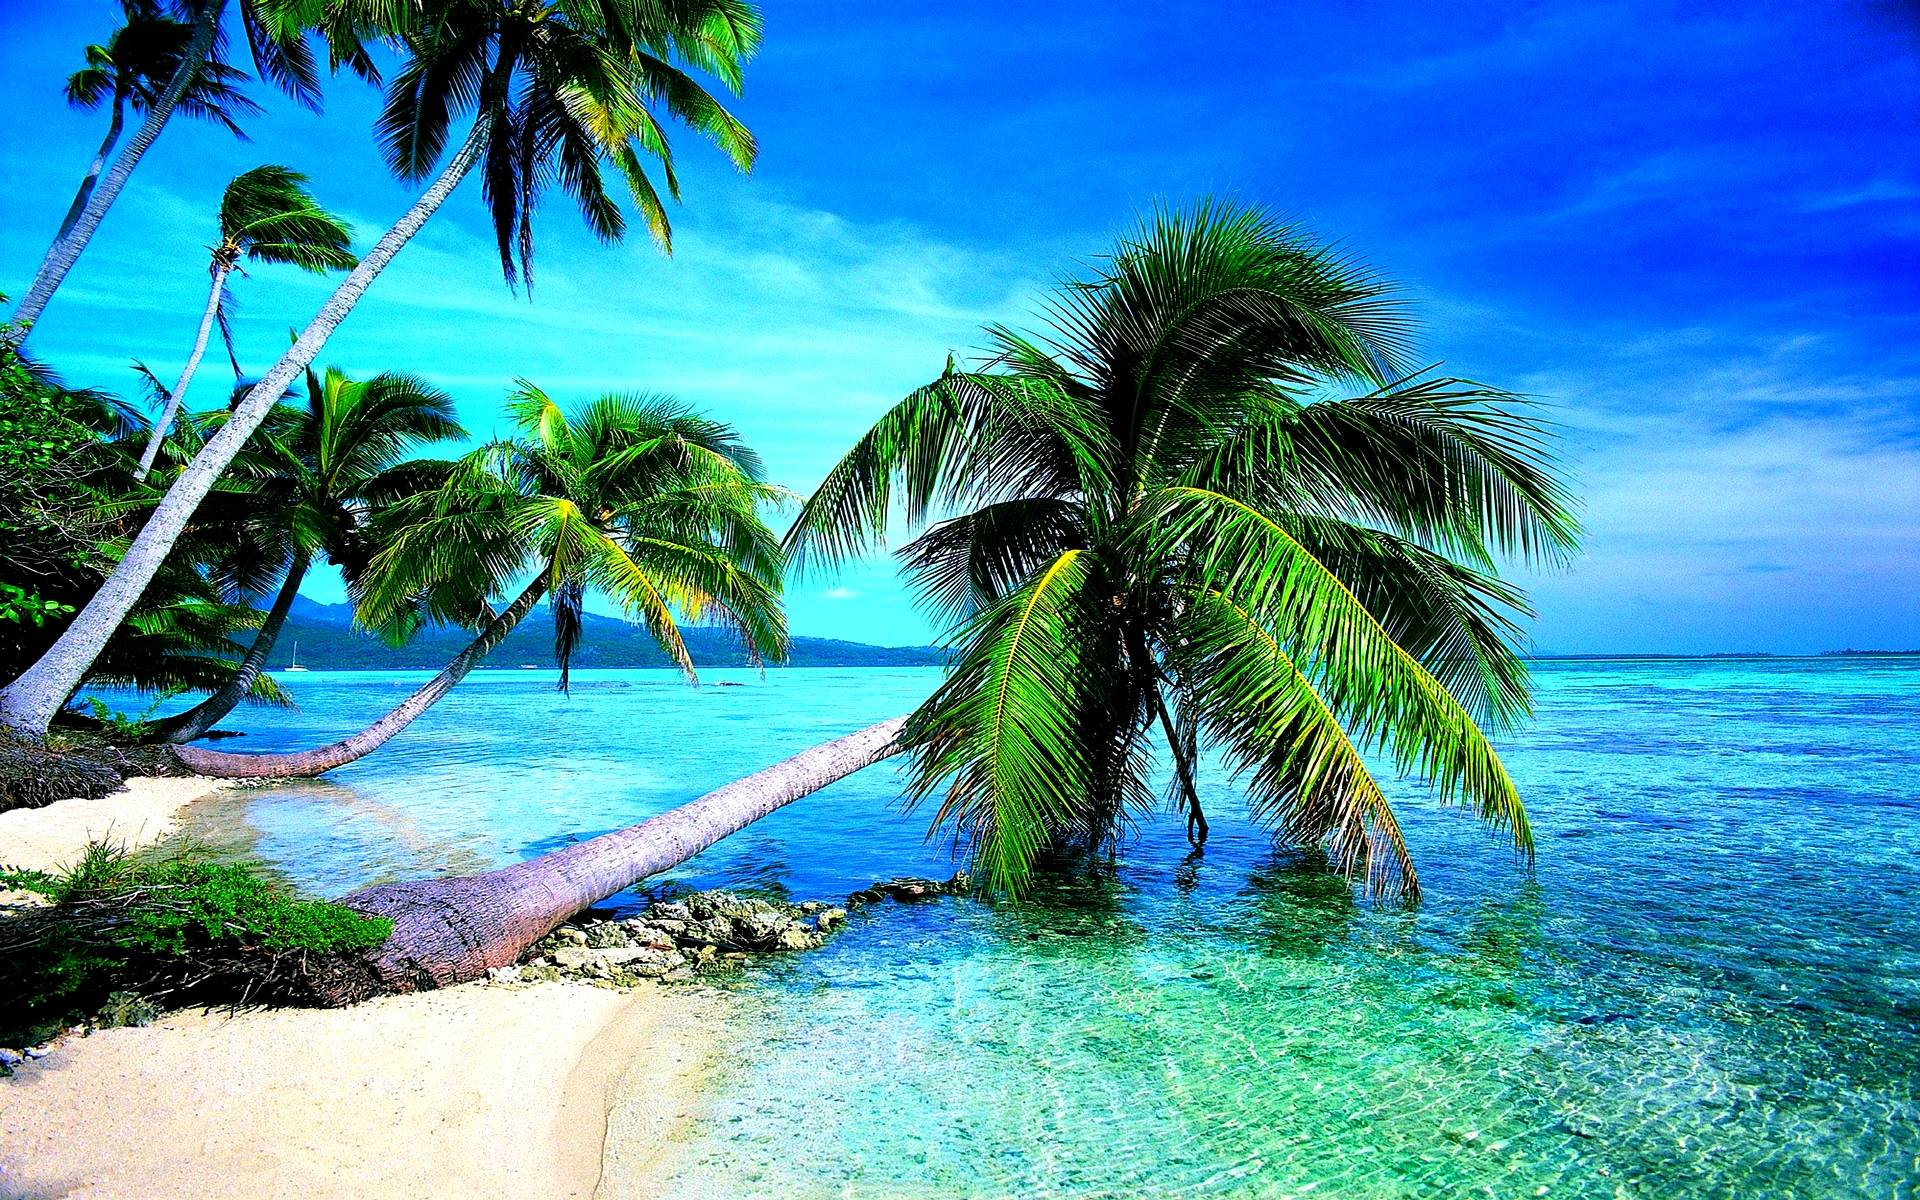 Hd Tropical Island Beach Paradise Wallpapers And Backgrounds: Tropical Beach Wallpapers Desktop